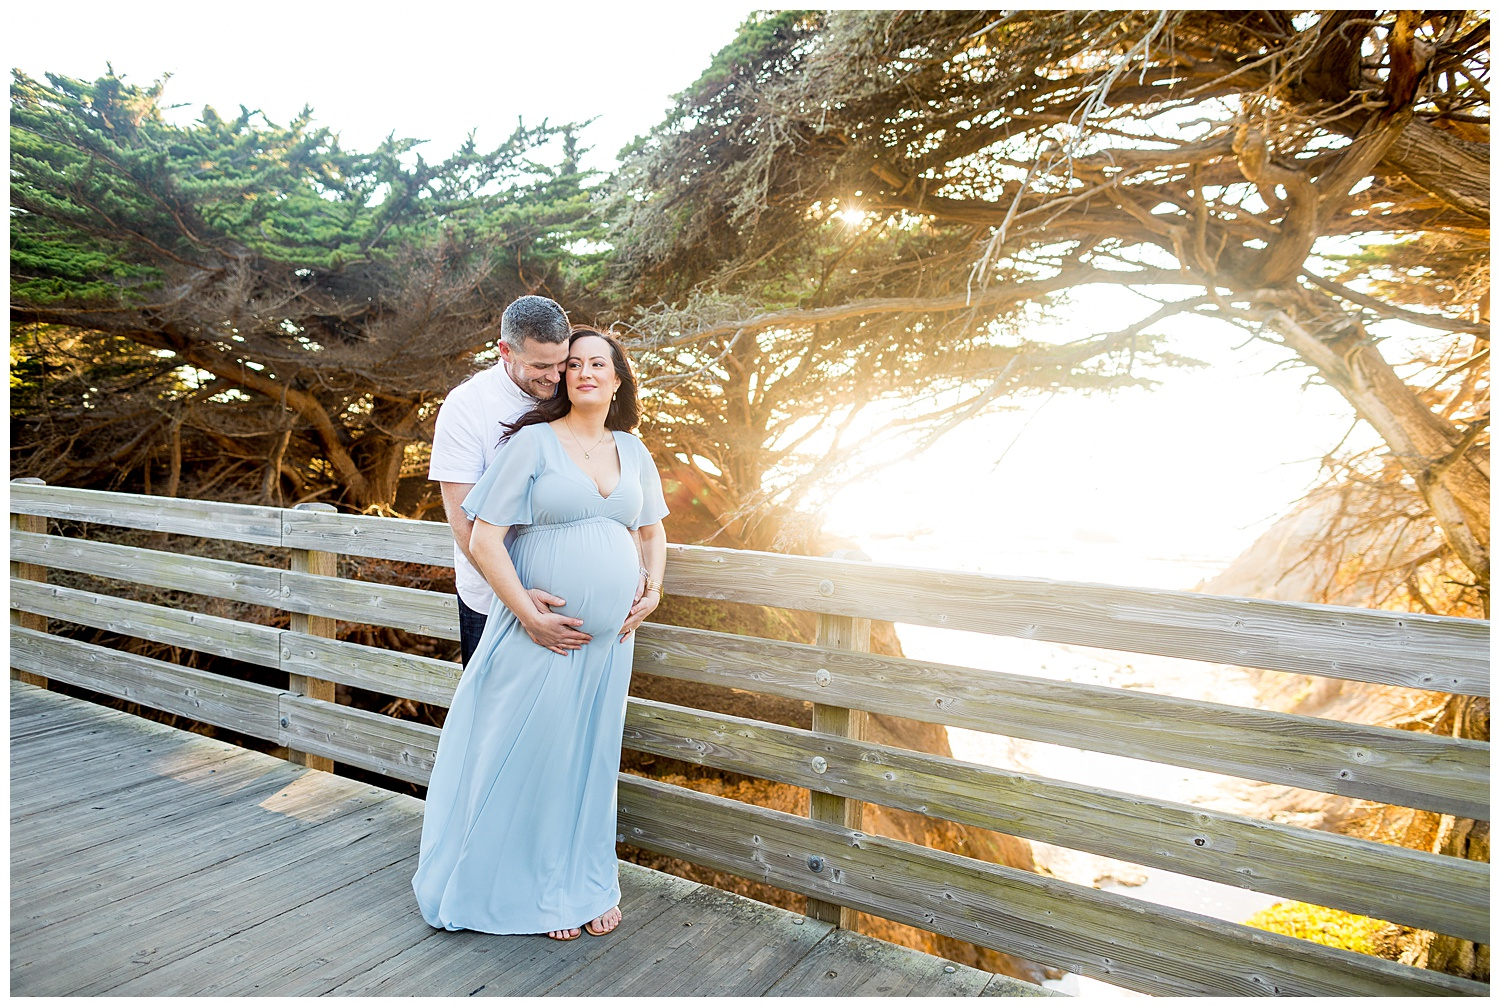 bayarea-maternity-photography-11.jpg